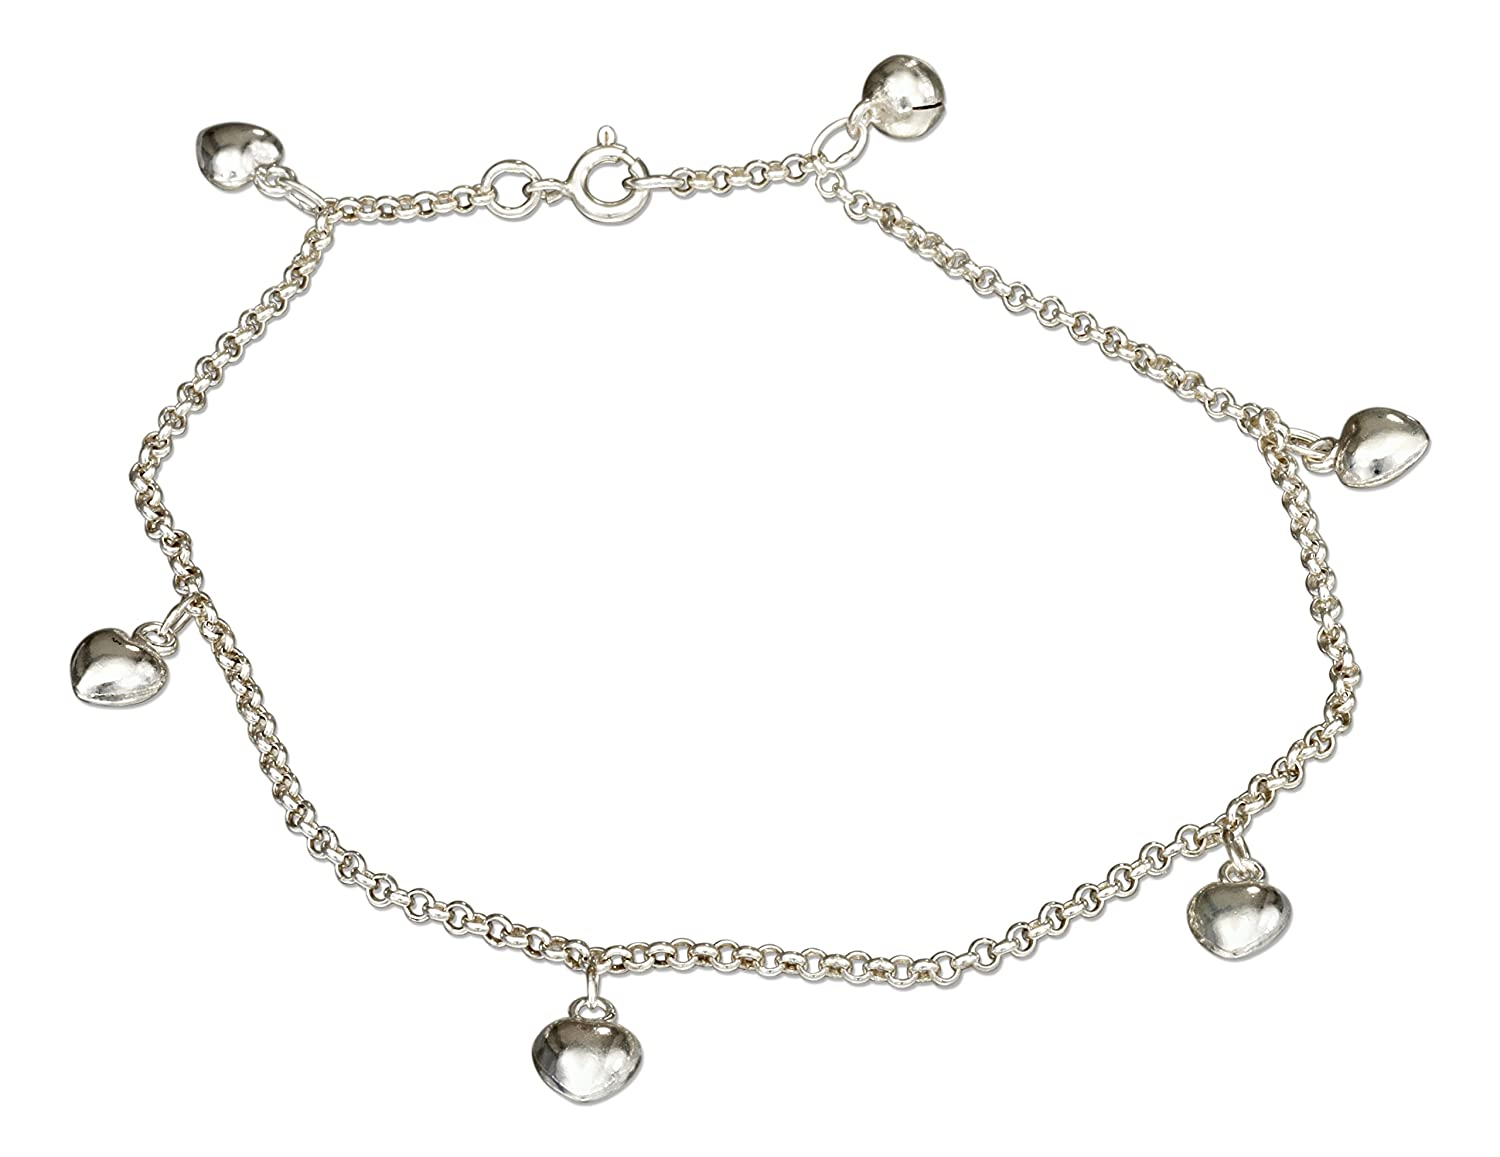 742cb6a3f2e Sterling Silver 10 inch Puffed Heart Dangle Ankle Bracelet with Chime Ball